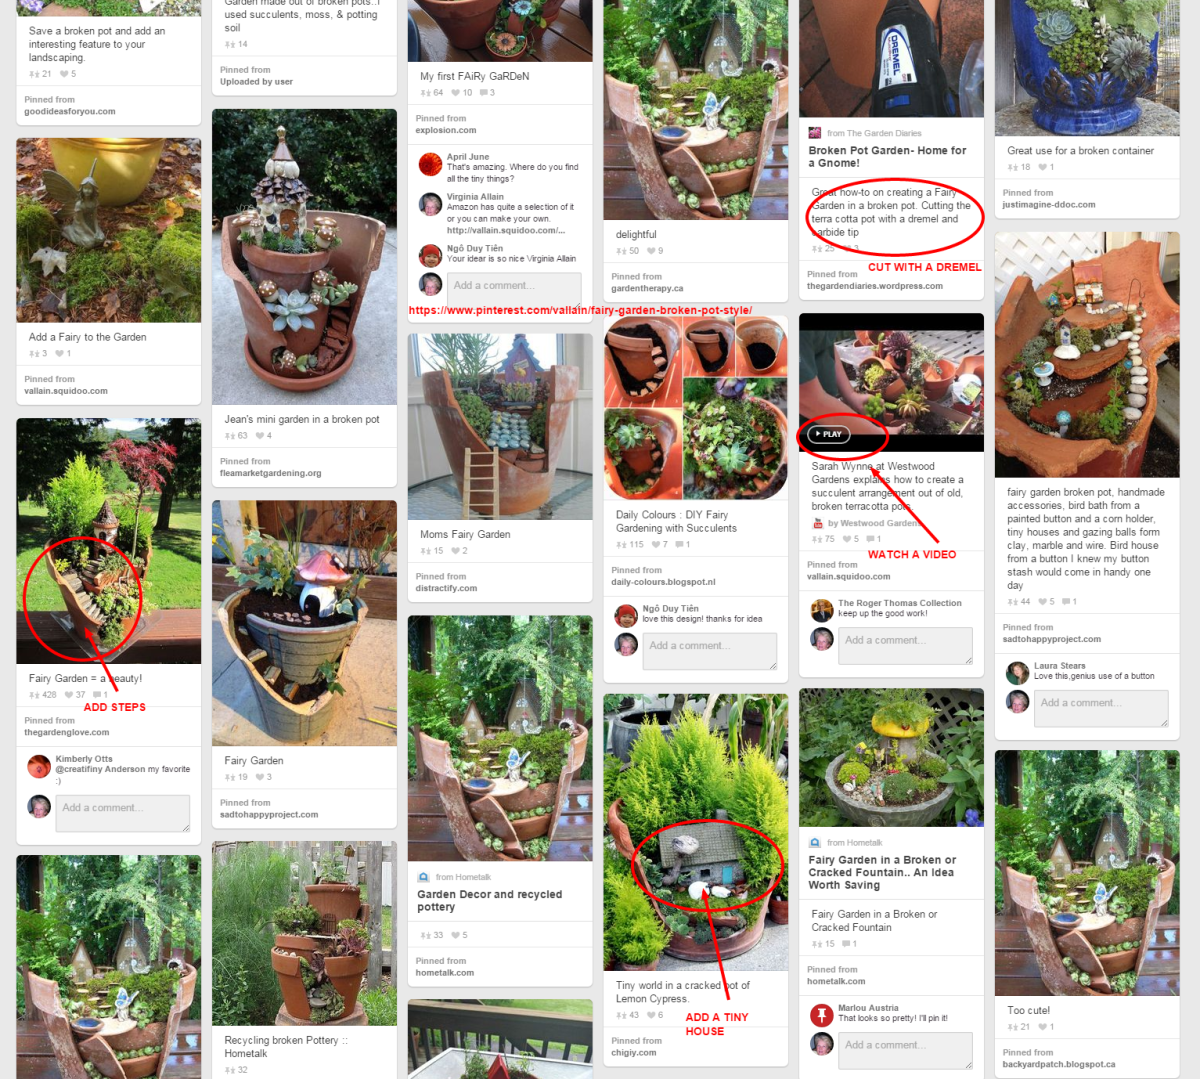 Here's a sample of the ideas I've collected on my Fairy Garden - Broken Pot Style on Pinterest.